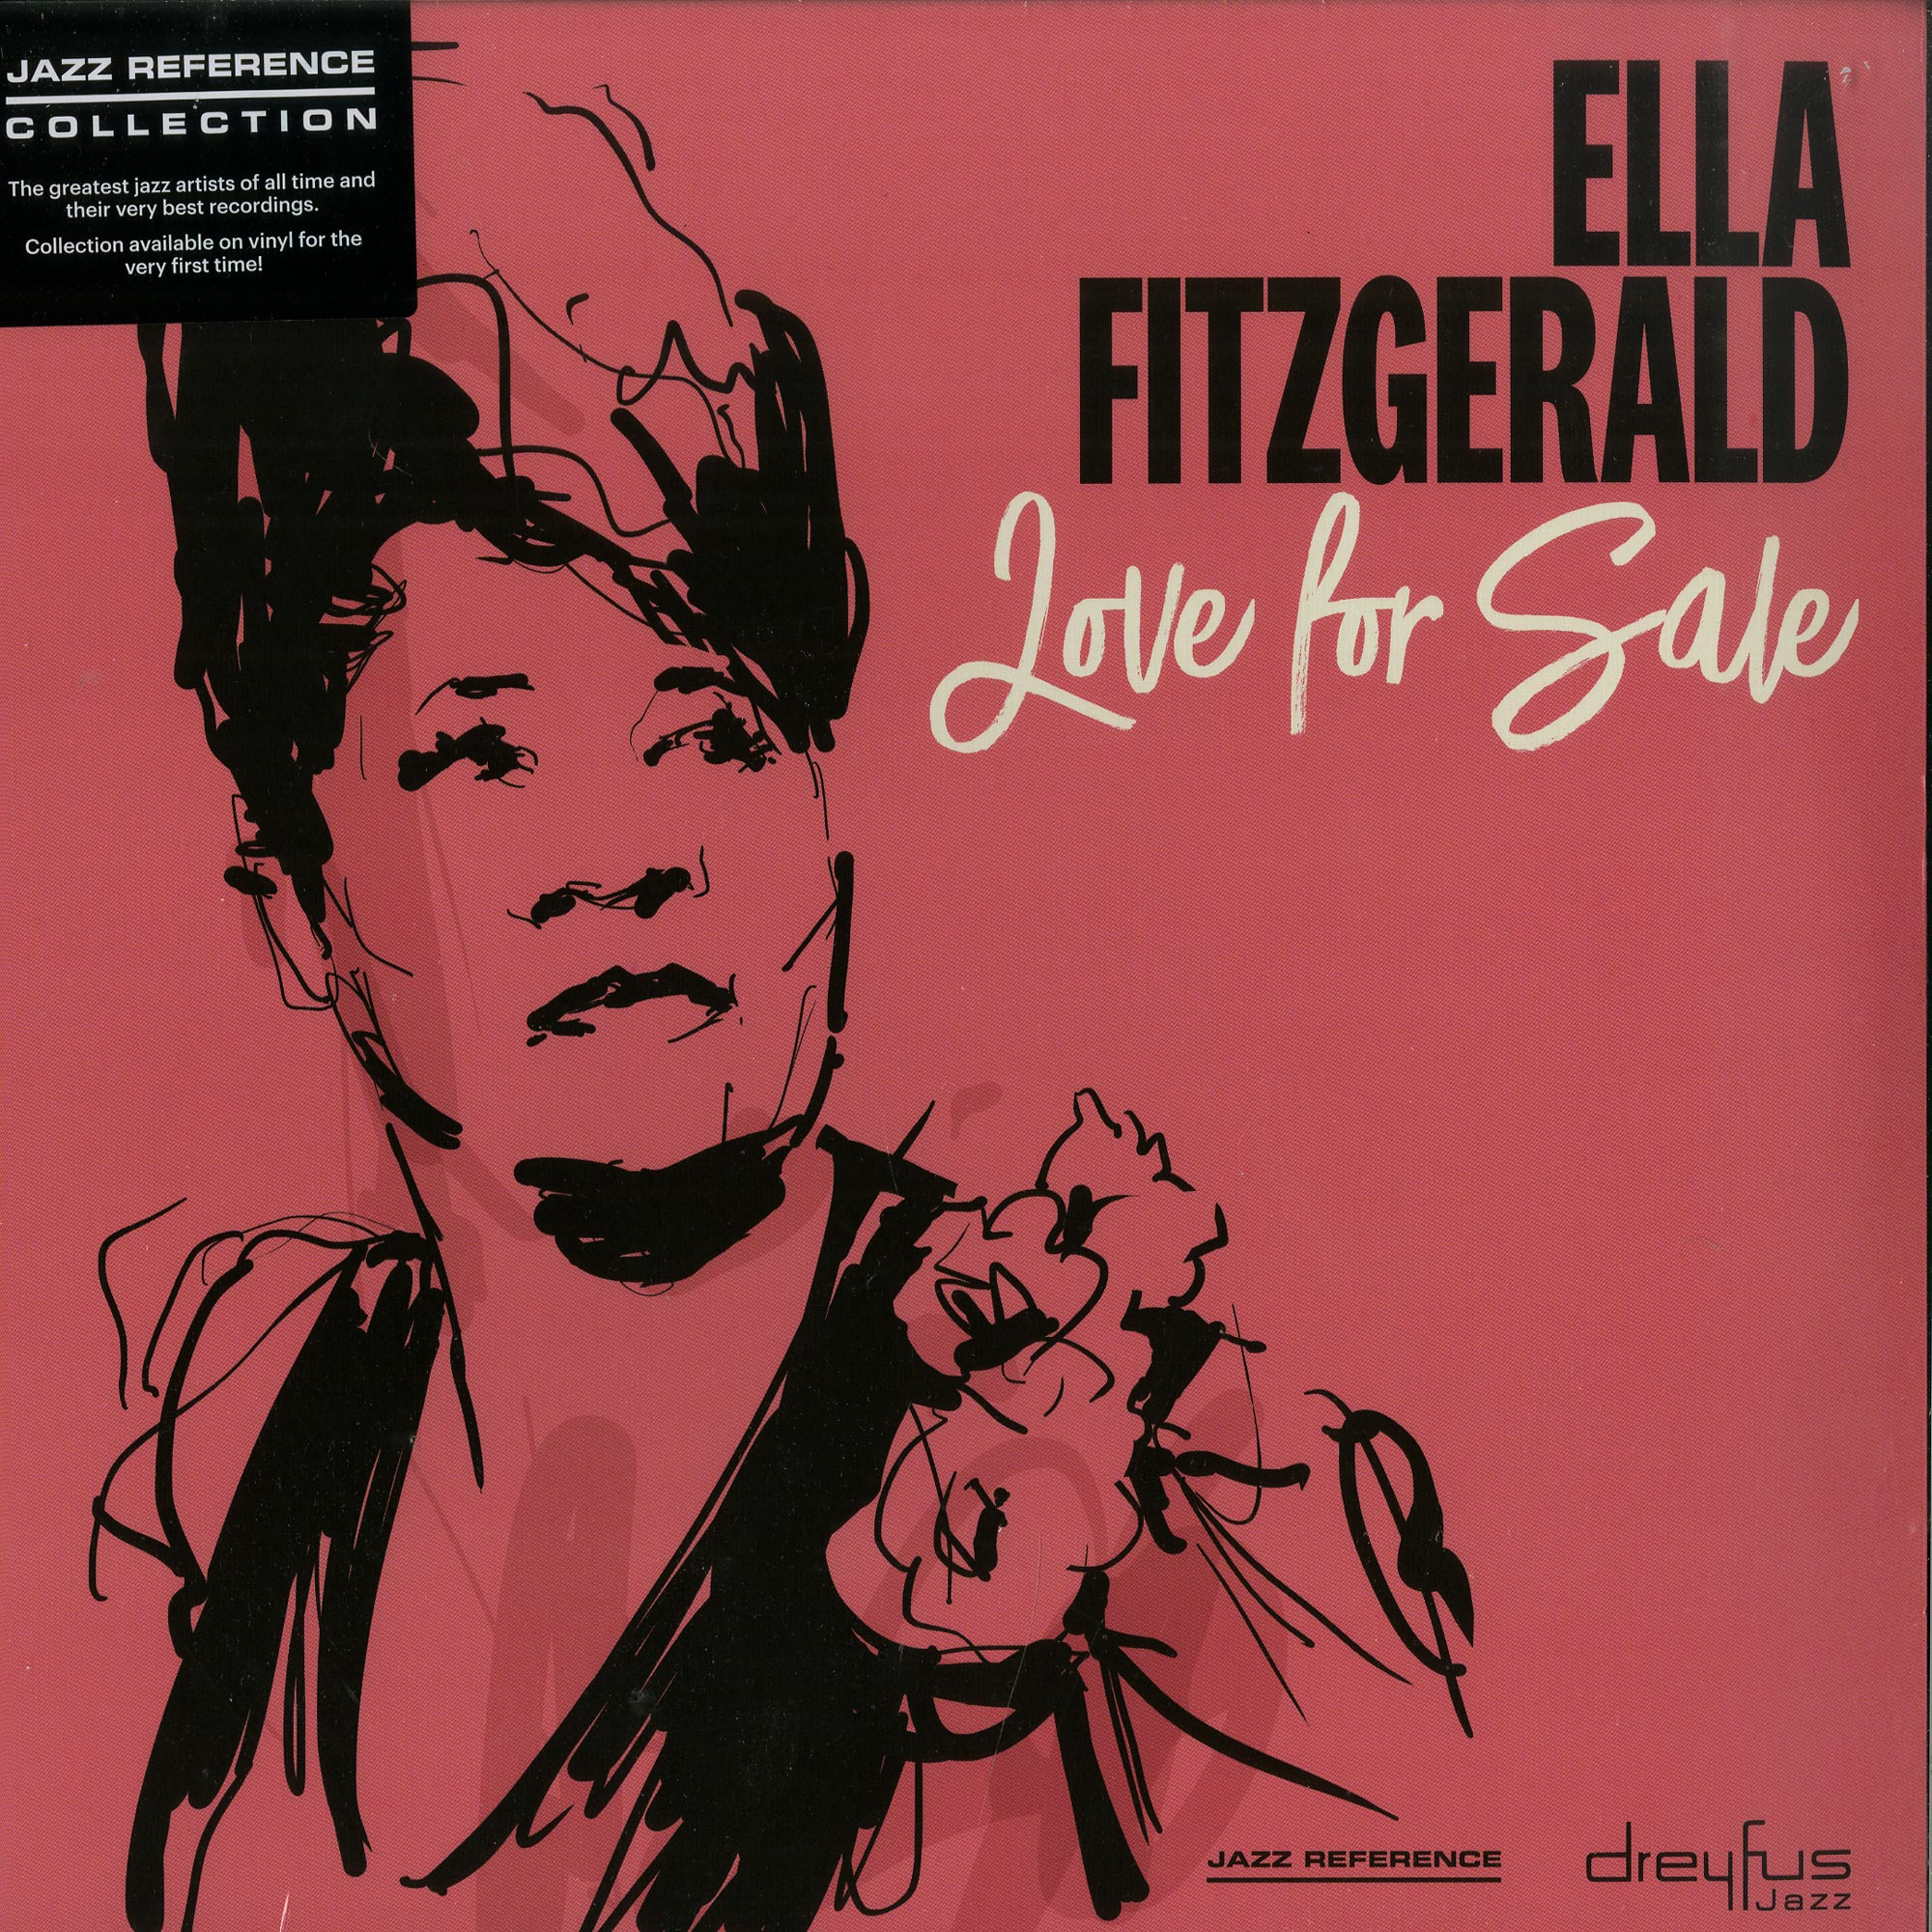 Elle Fitzgerald - LOVE FOR SALE